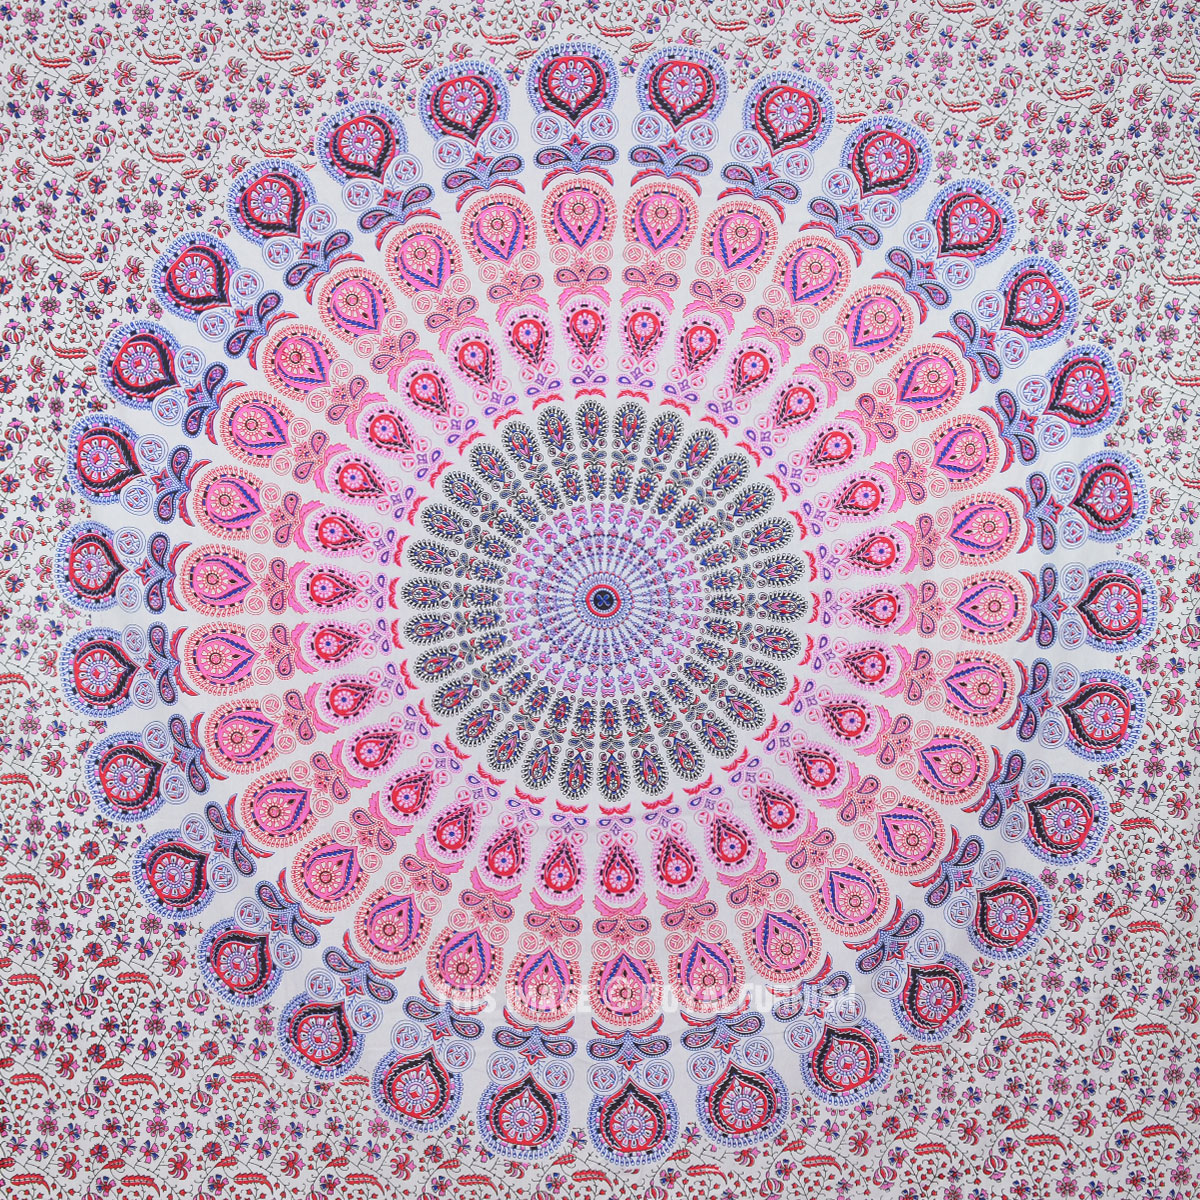 Tapestry 13 99 Large Red Multi Glittering Mandala Tapestry Hippie